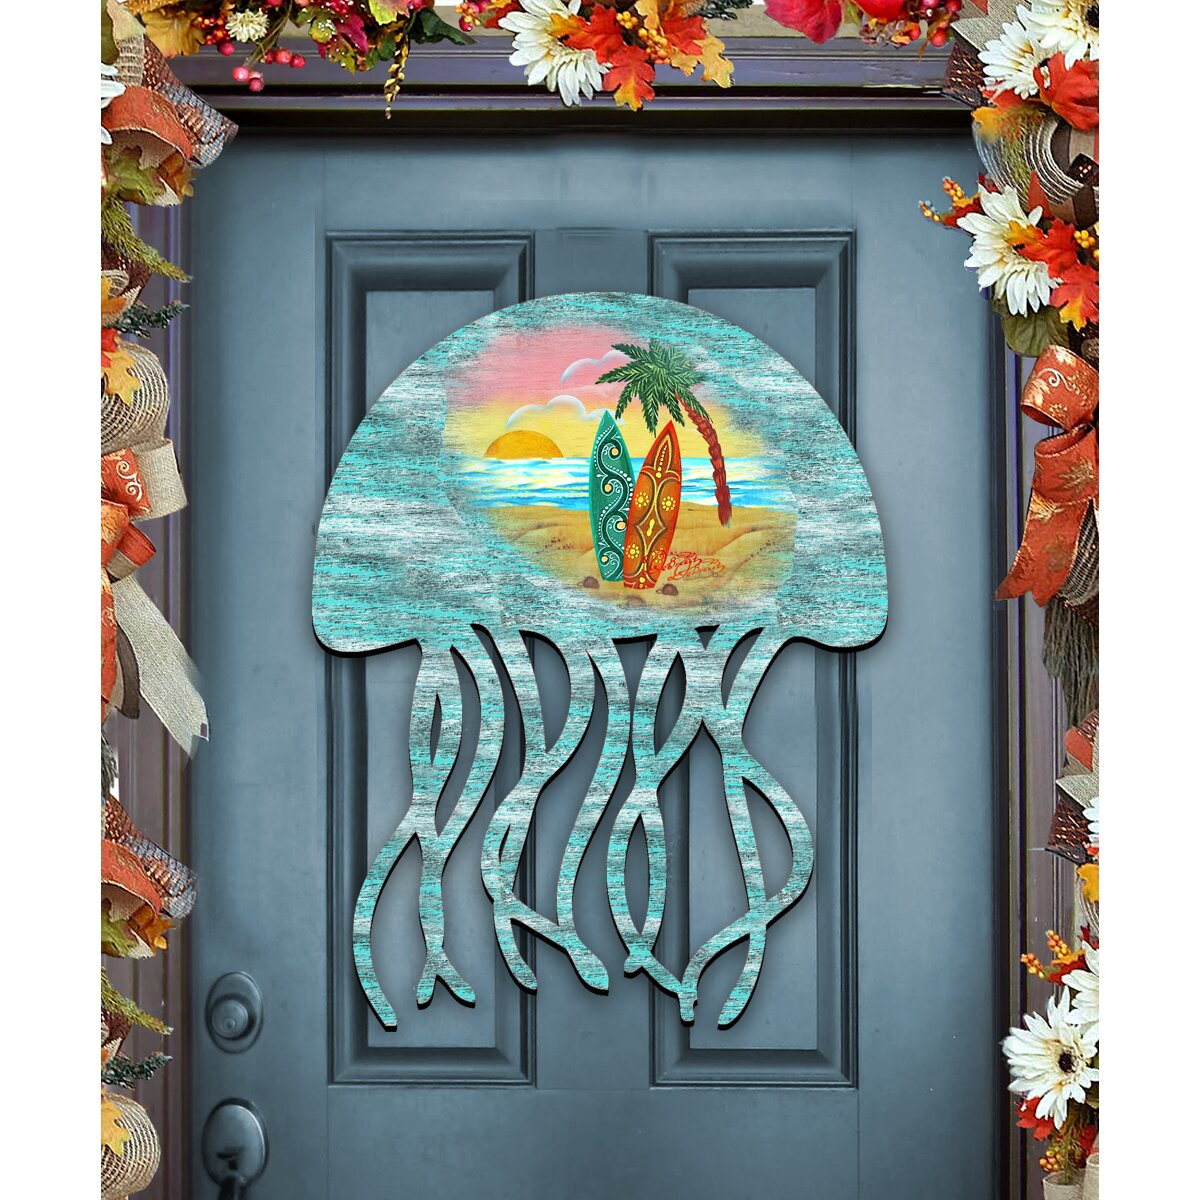 Decorative Door Hangers G Debrekht Jellyfish Coastal Beach Wooden Decorative Door Hanger